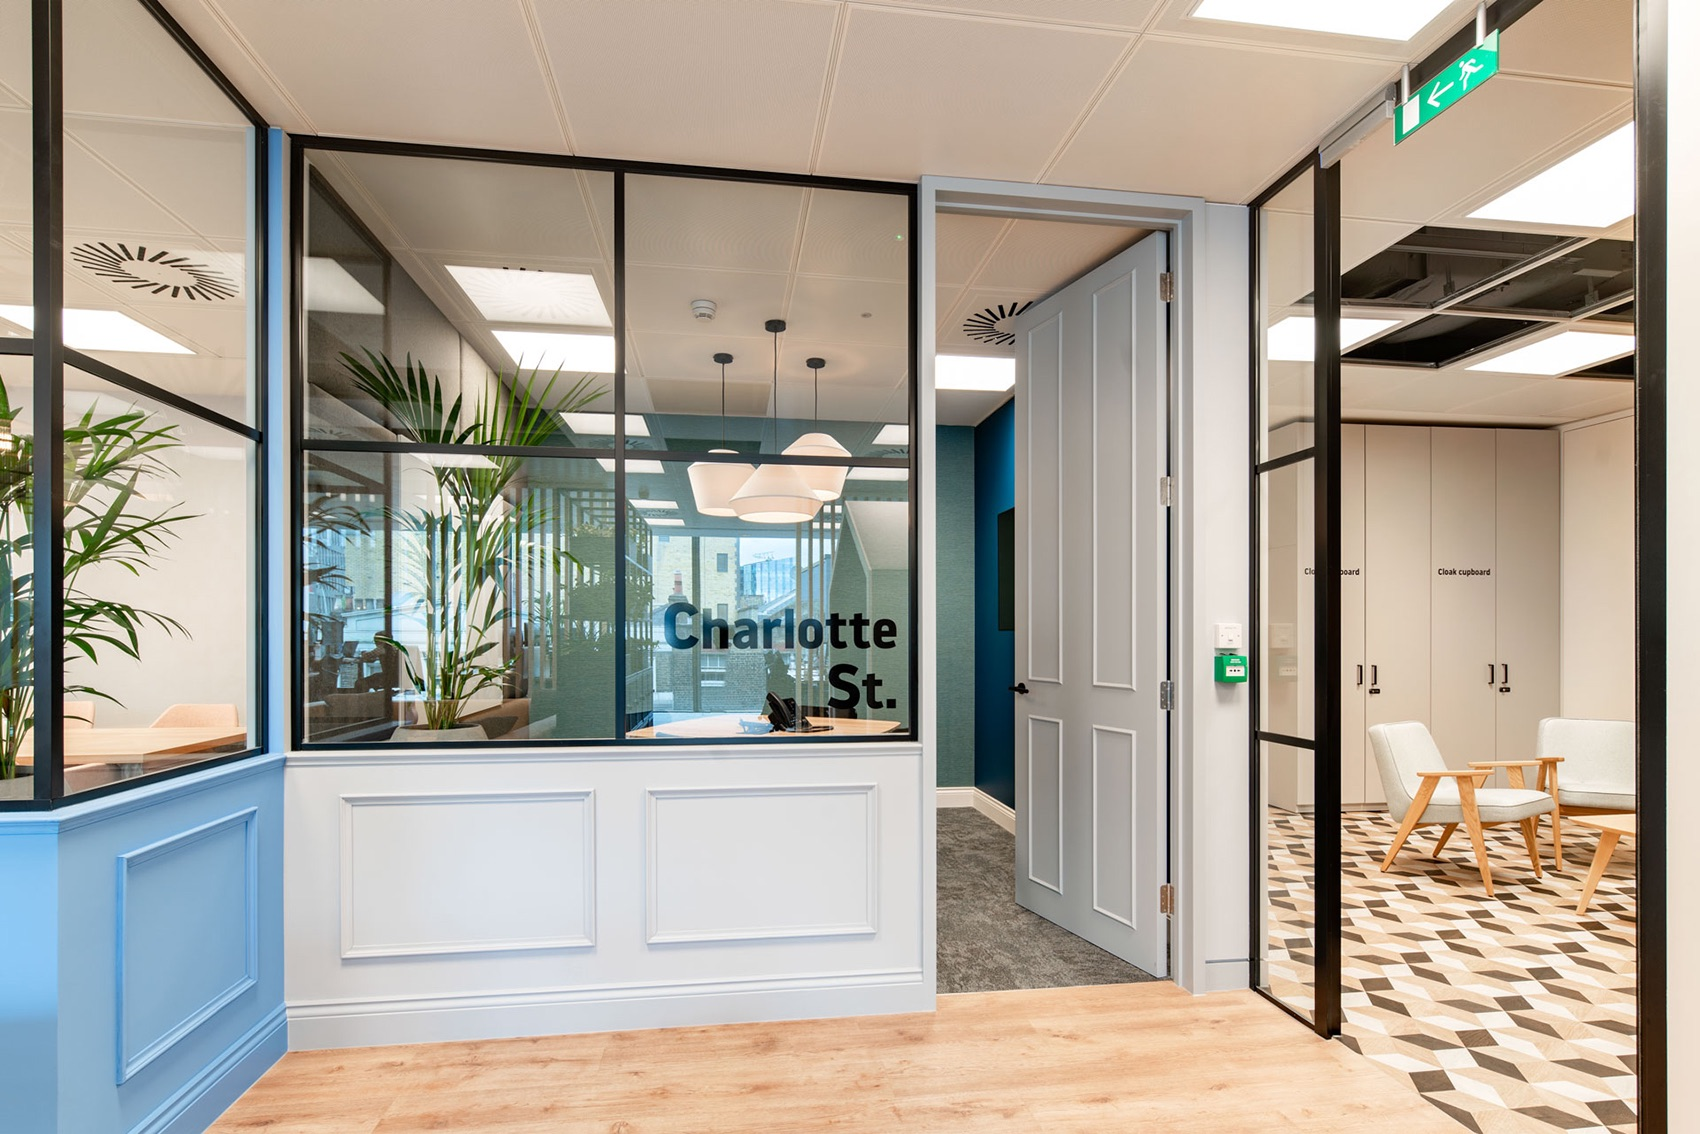 tomtom-london-office-7